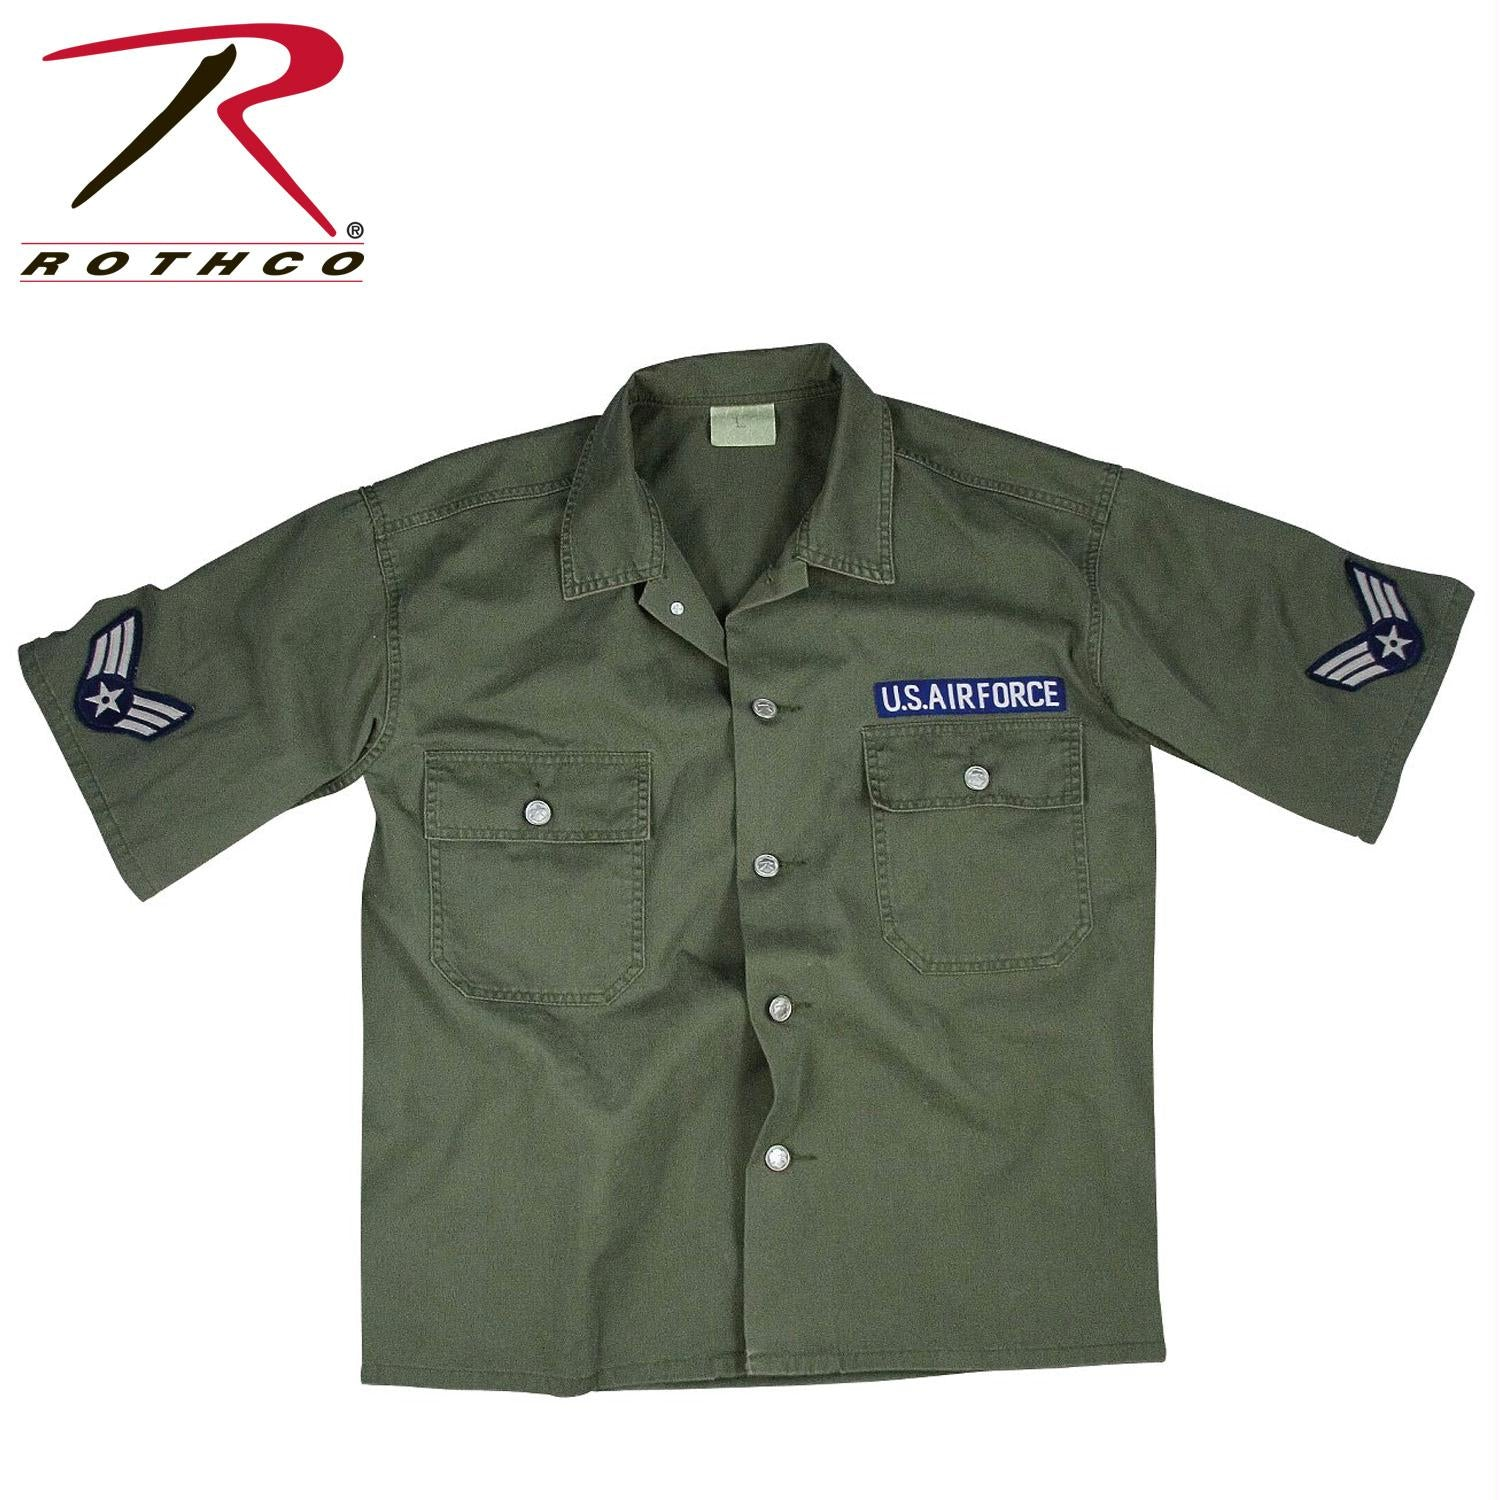 Rothco Vintage Army Air Force Short Sleeve BDU Shirt - XL